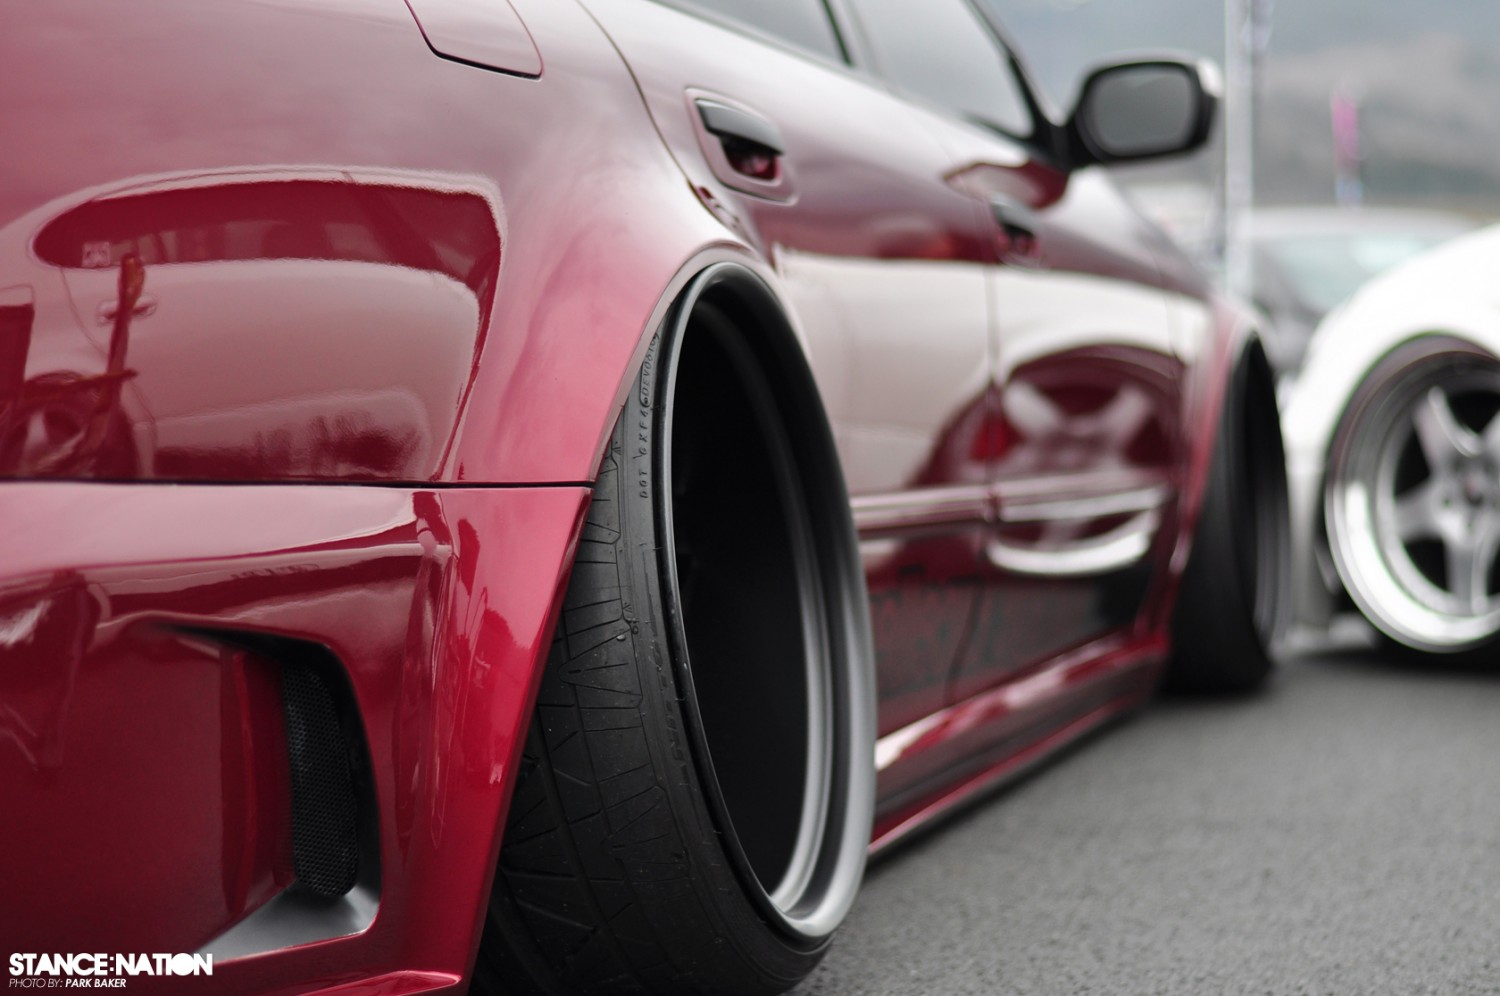 Vip Cars Hd Wallpaper Talk About Aggressive Fitment Stancenation Form